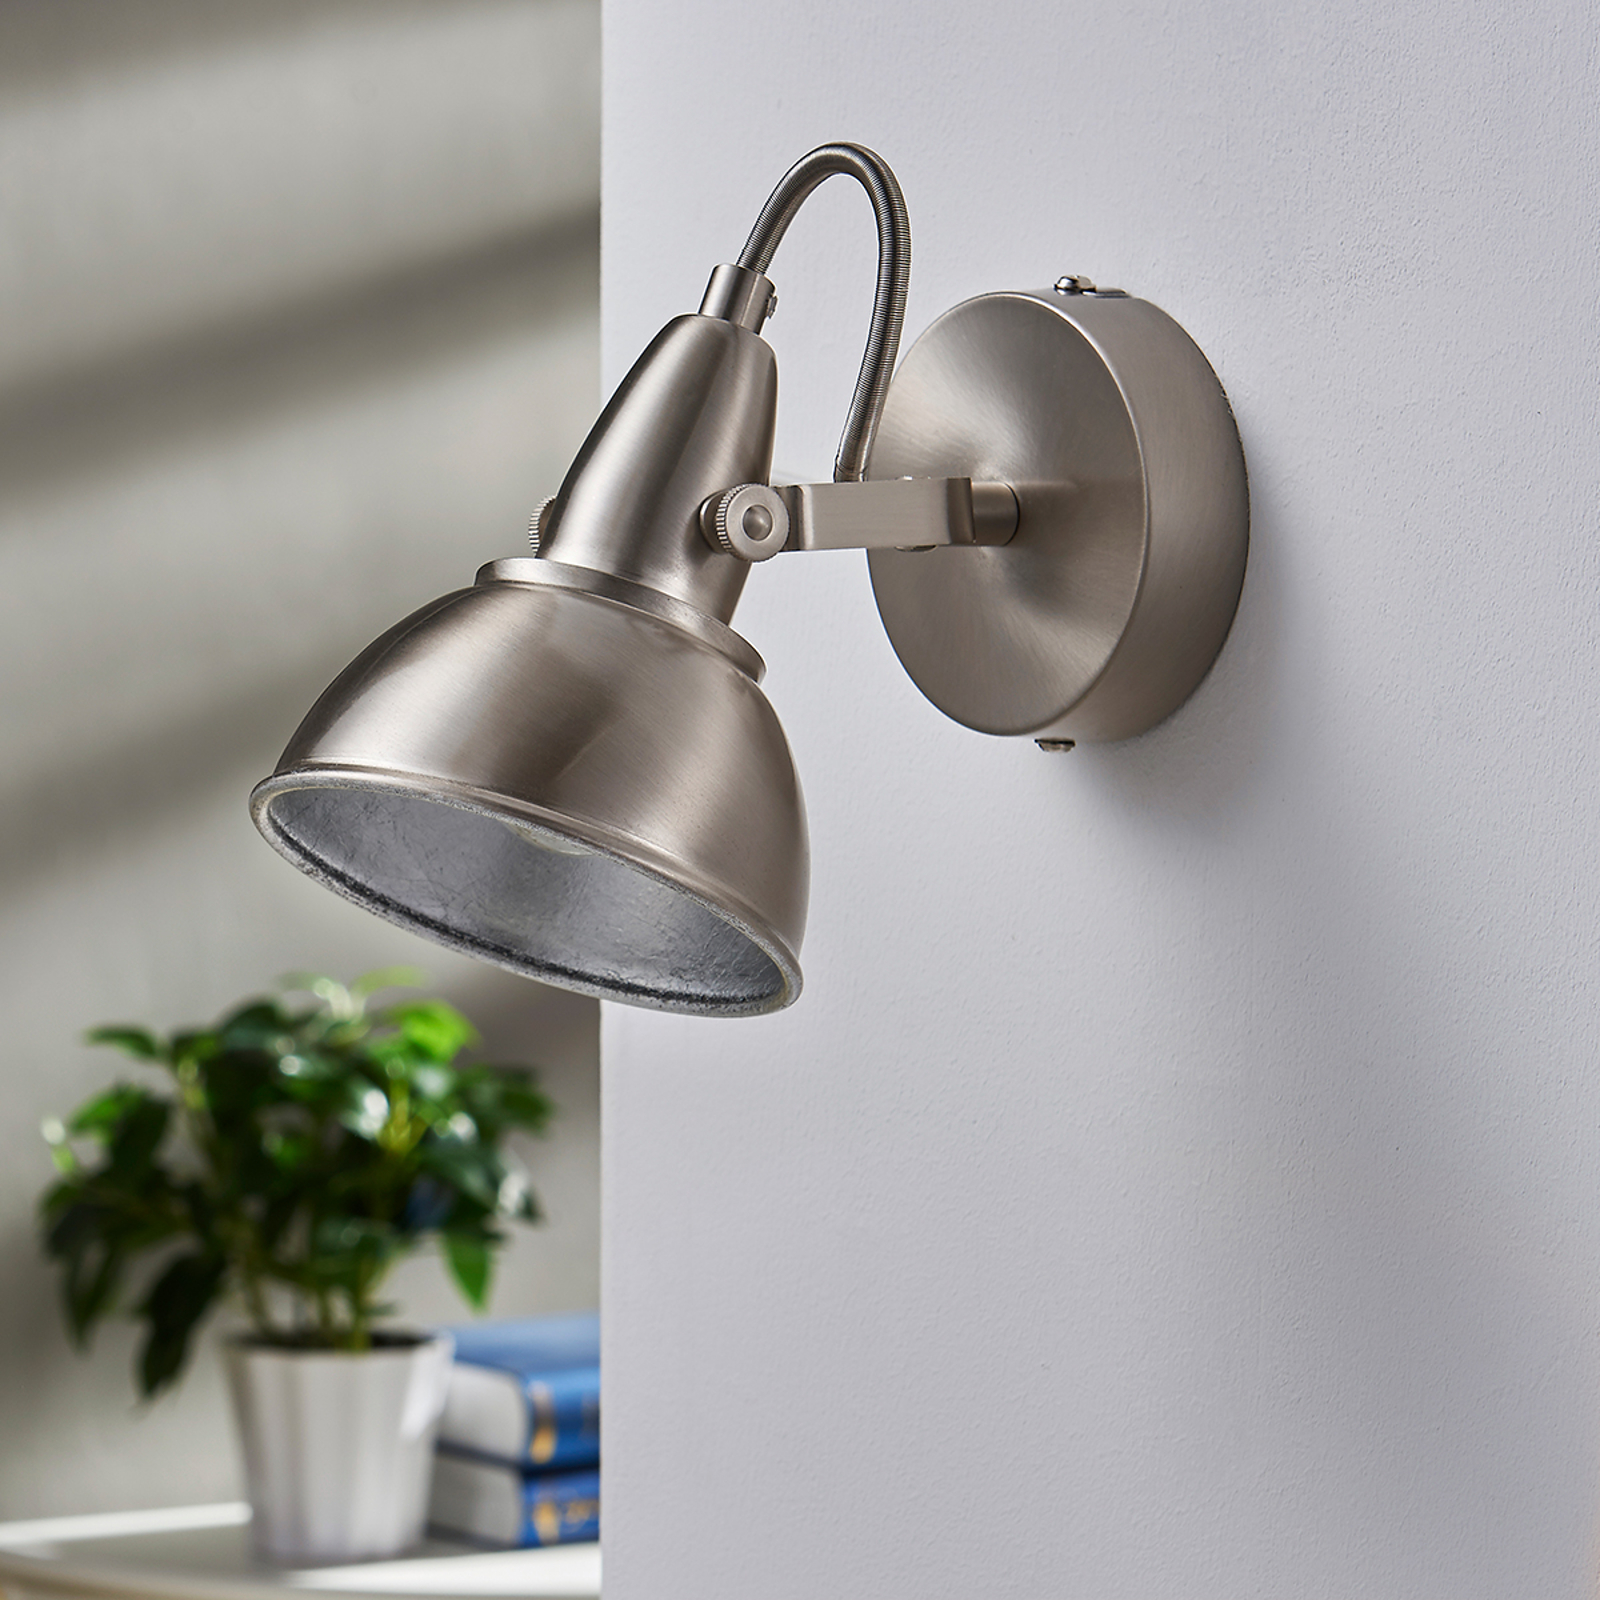 Vintage Look Attractive Wall Spotlight Julin With Vintage Look | Lights.co.uk